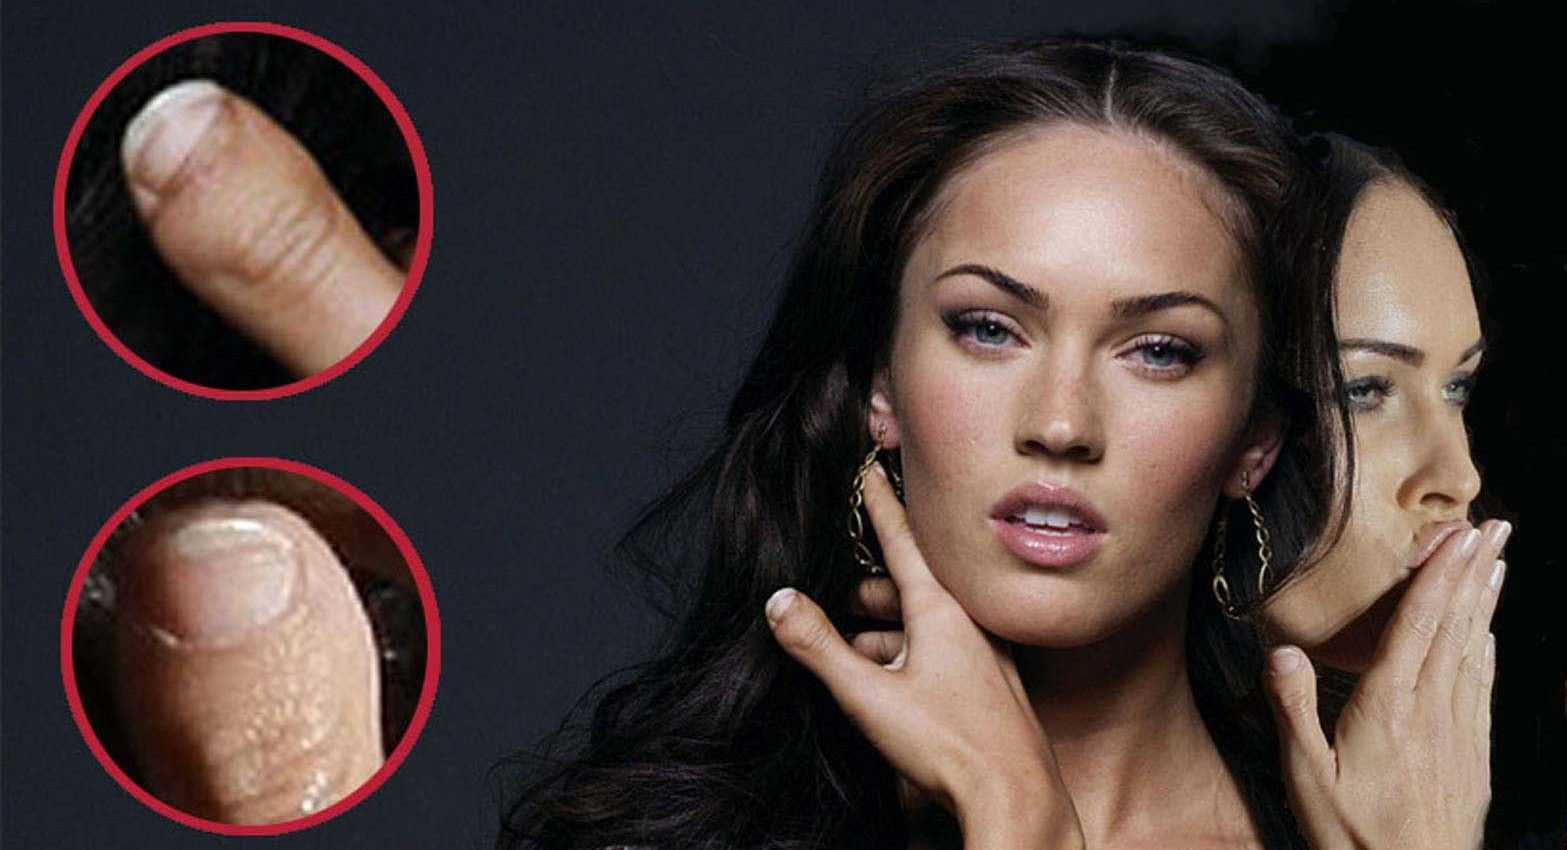 15 Celebs Who You Didn't Know Had Strange Body Parts